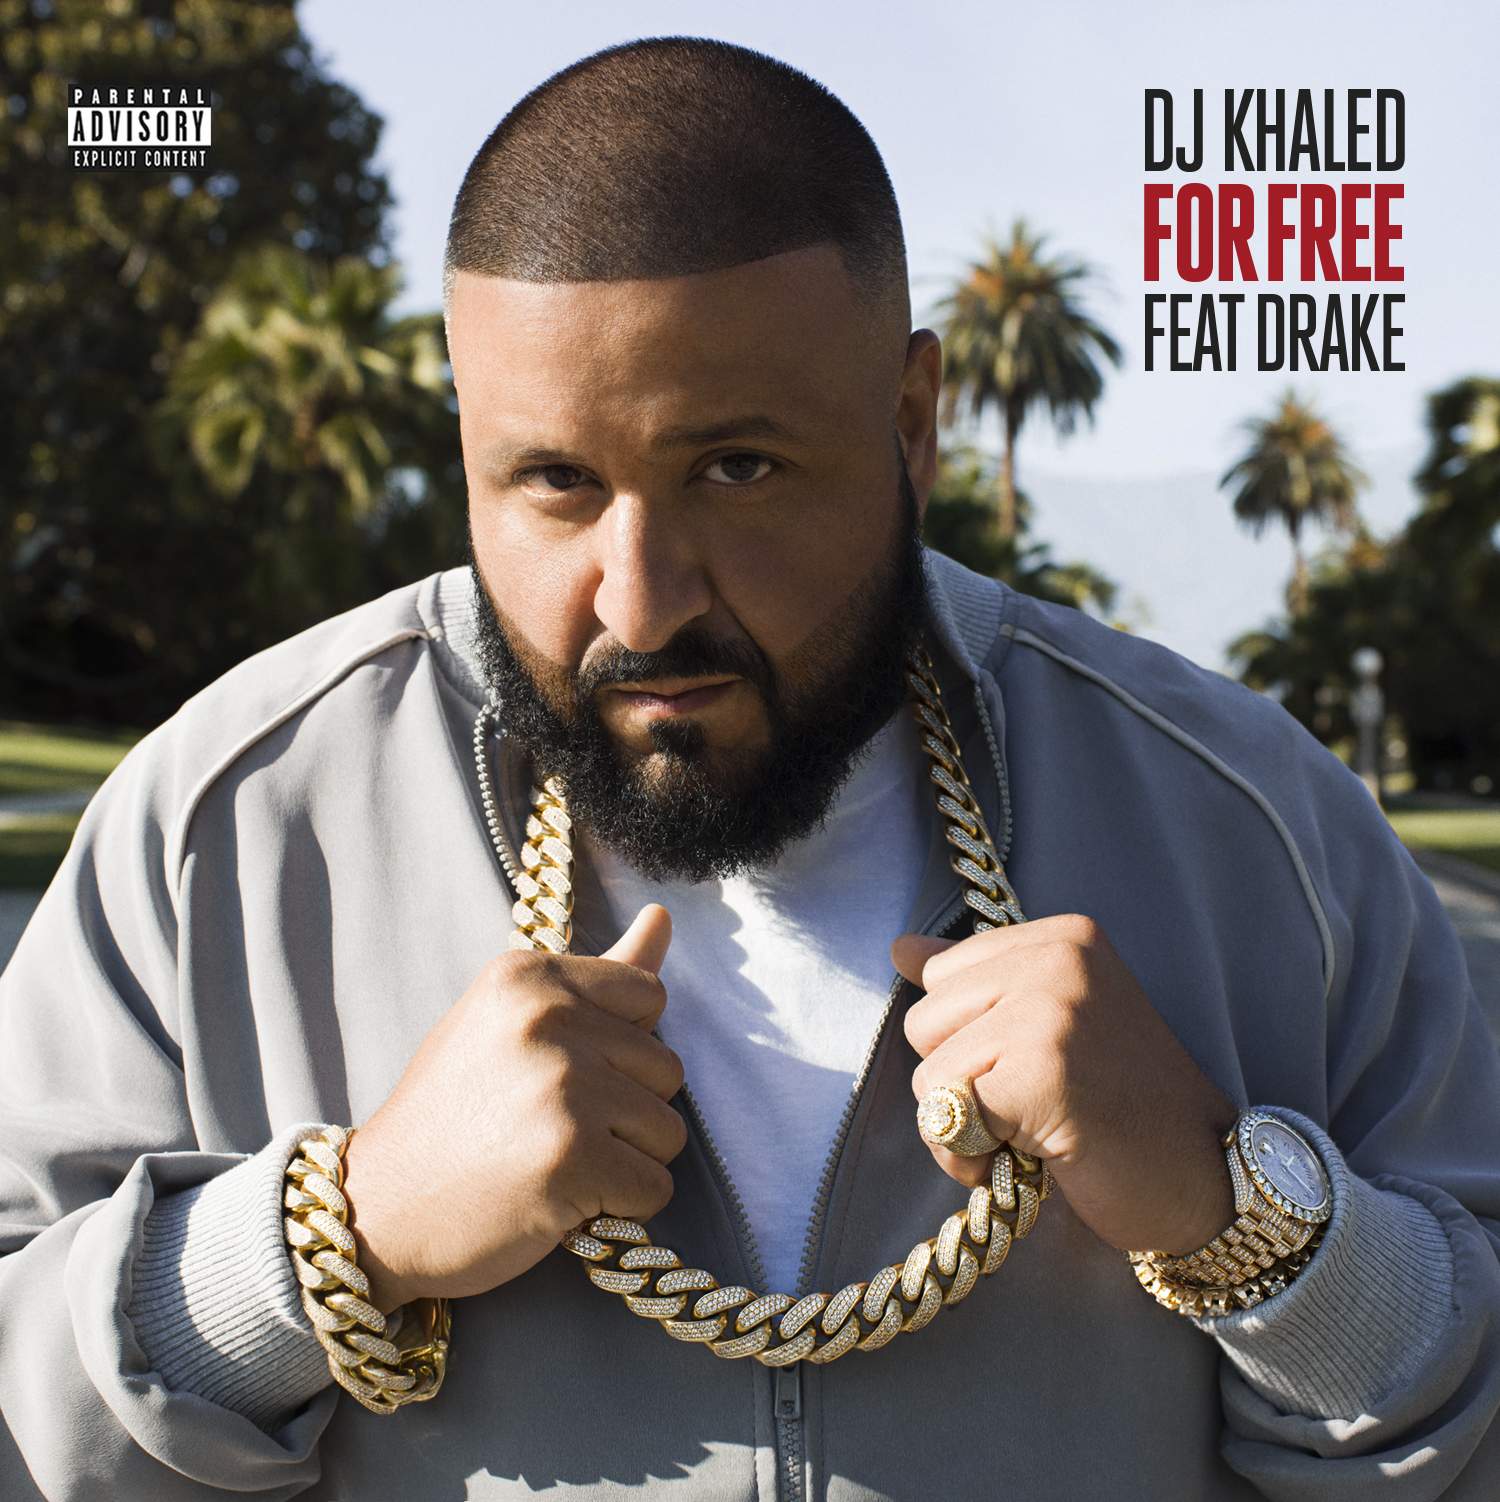 c446a17b88b1d DJ KHALED RELEASES NEW SINGLE